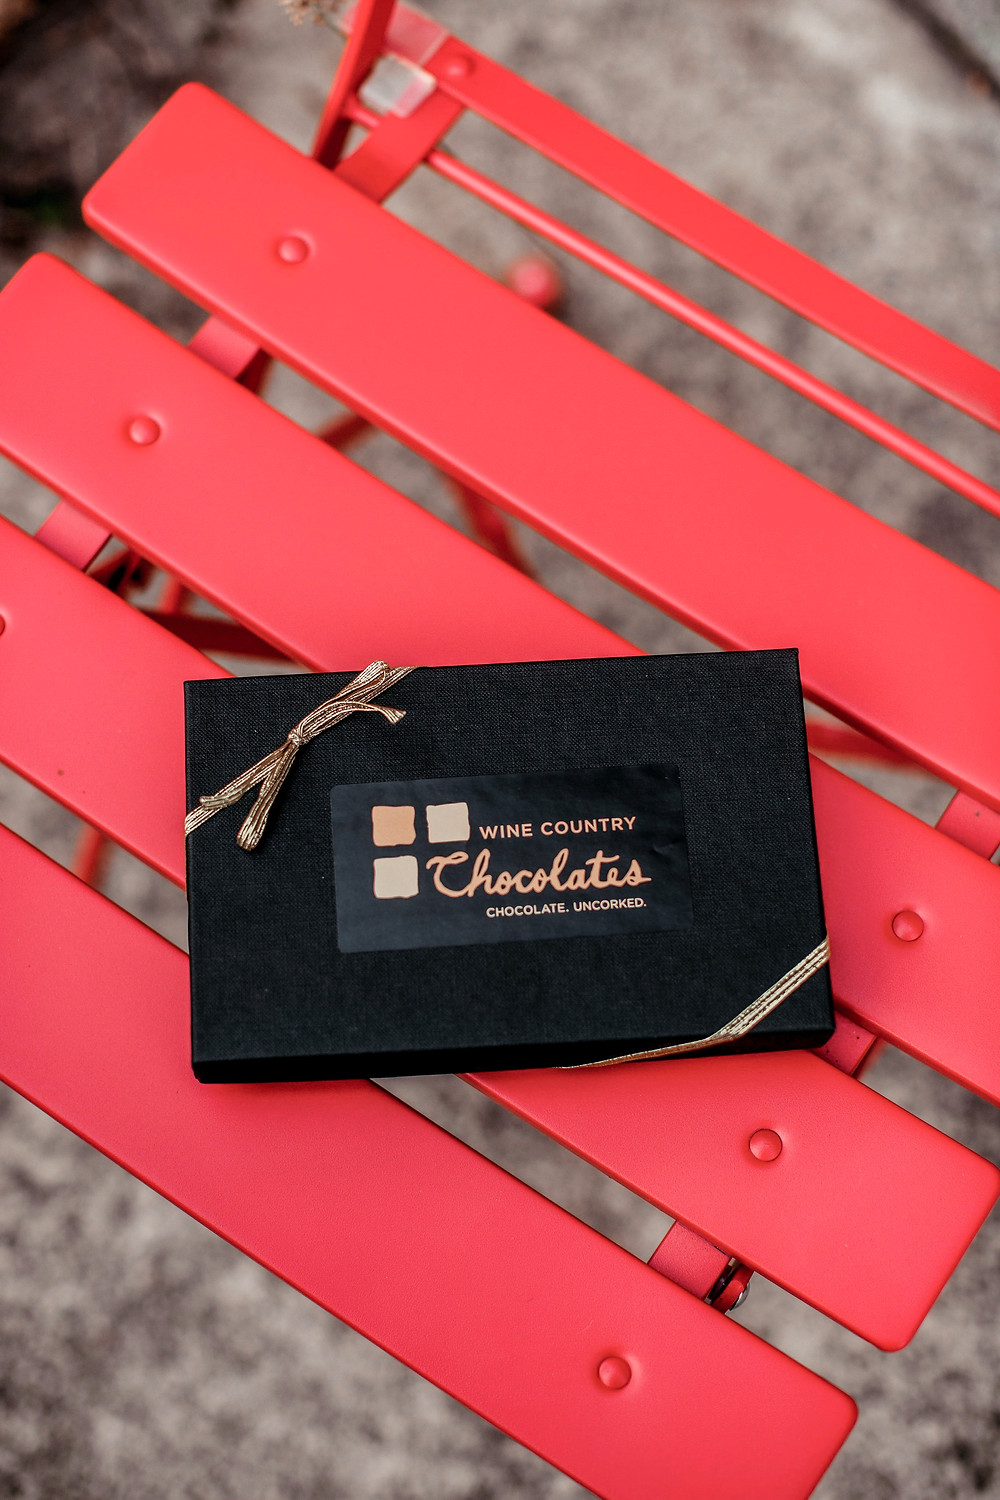 sonoma grape girl, gift guide, holiday gift guide, wine gift guide, wine country gift guide, sonoma county blogger, wine blogger, wine country chocolates